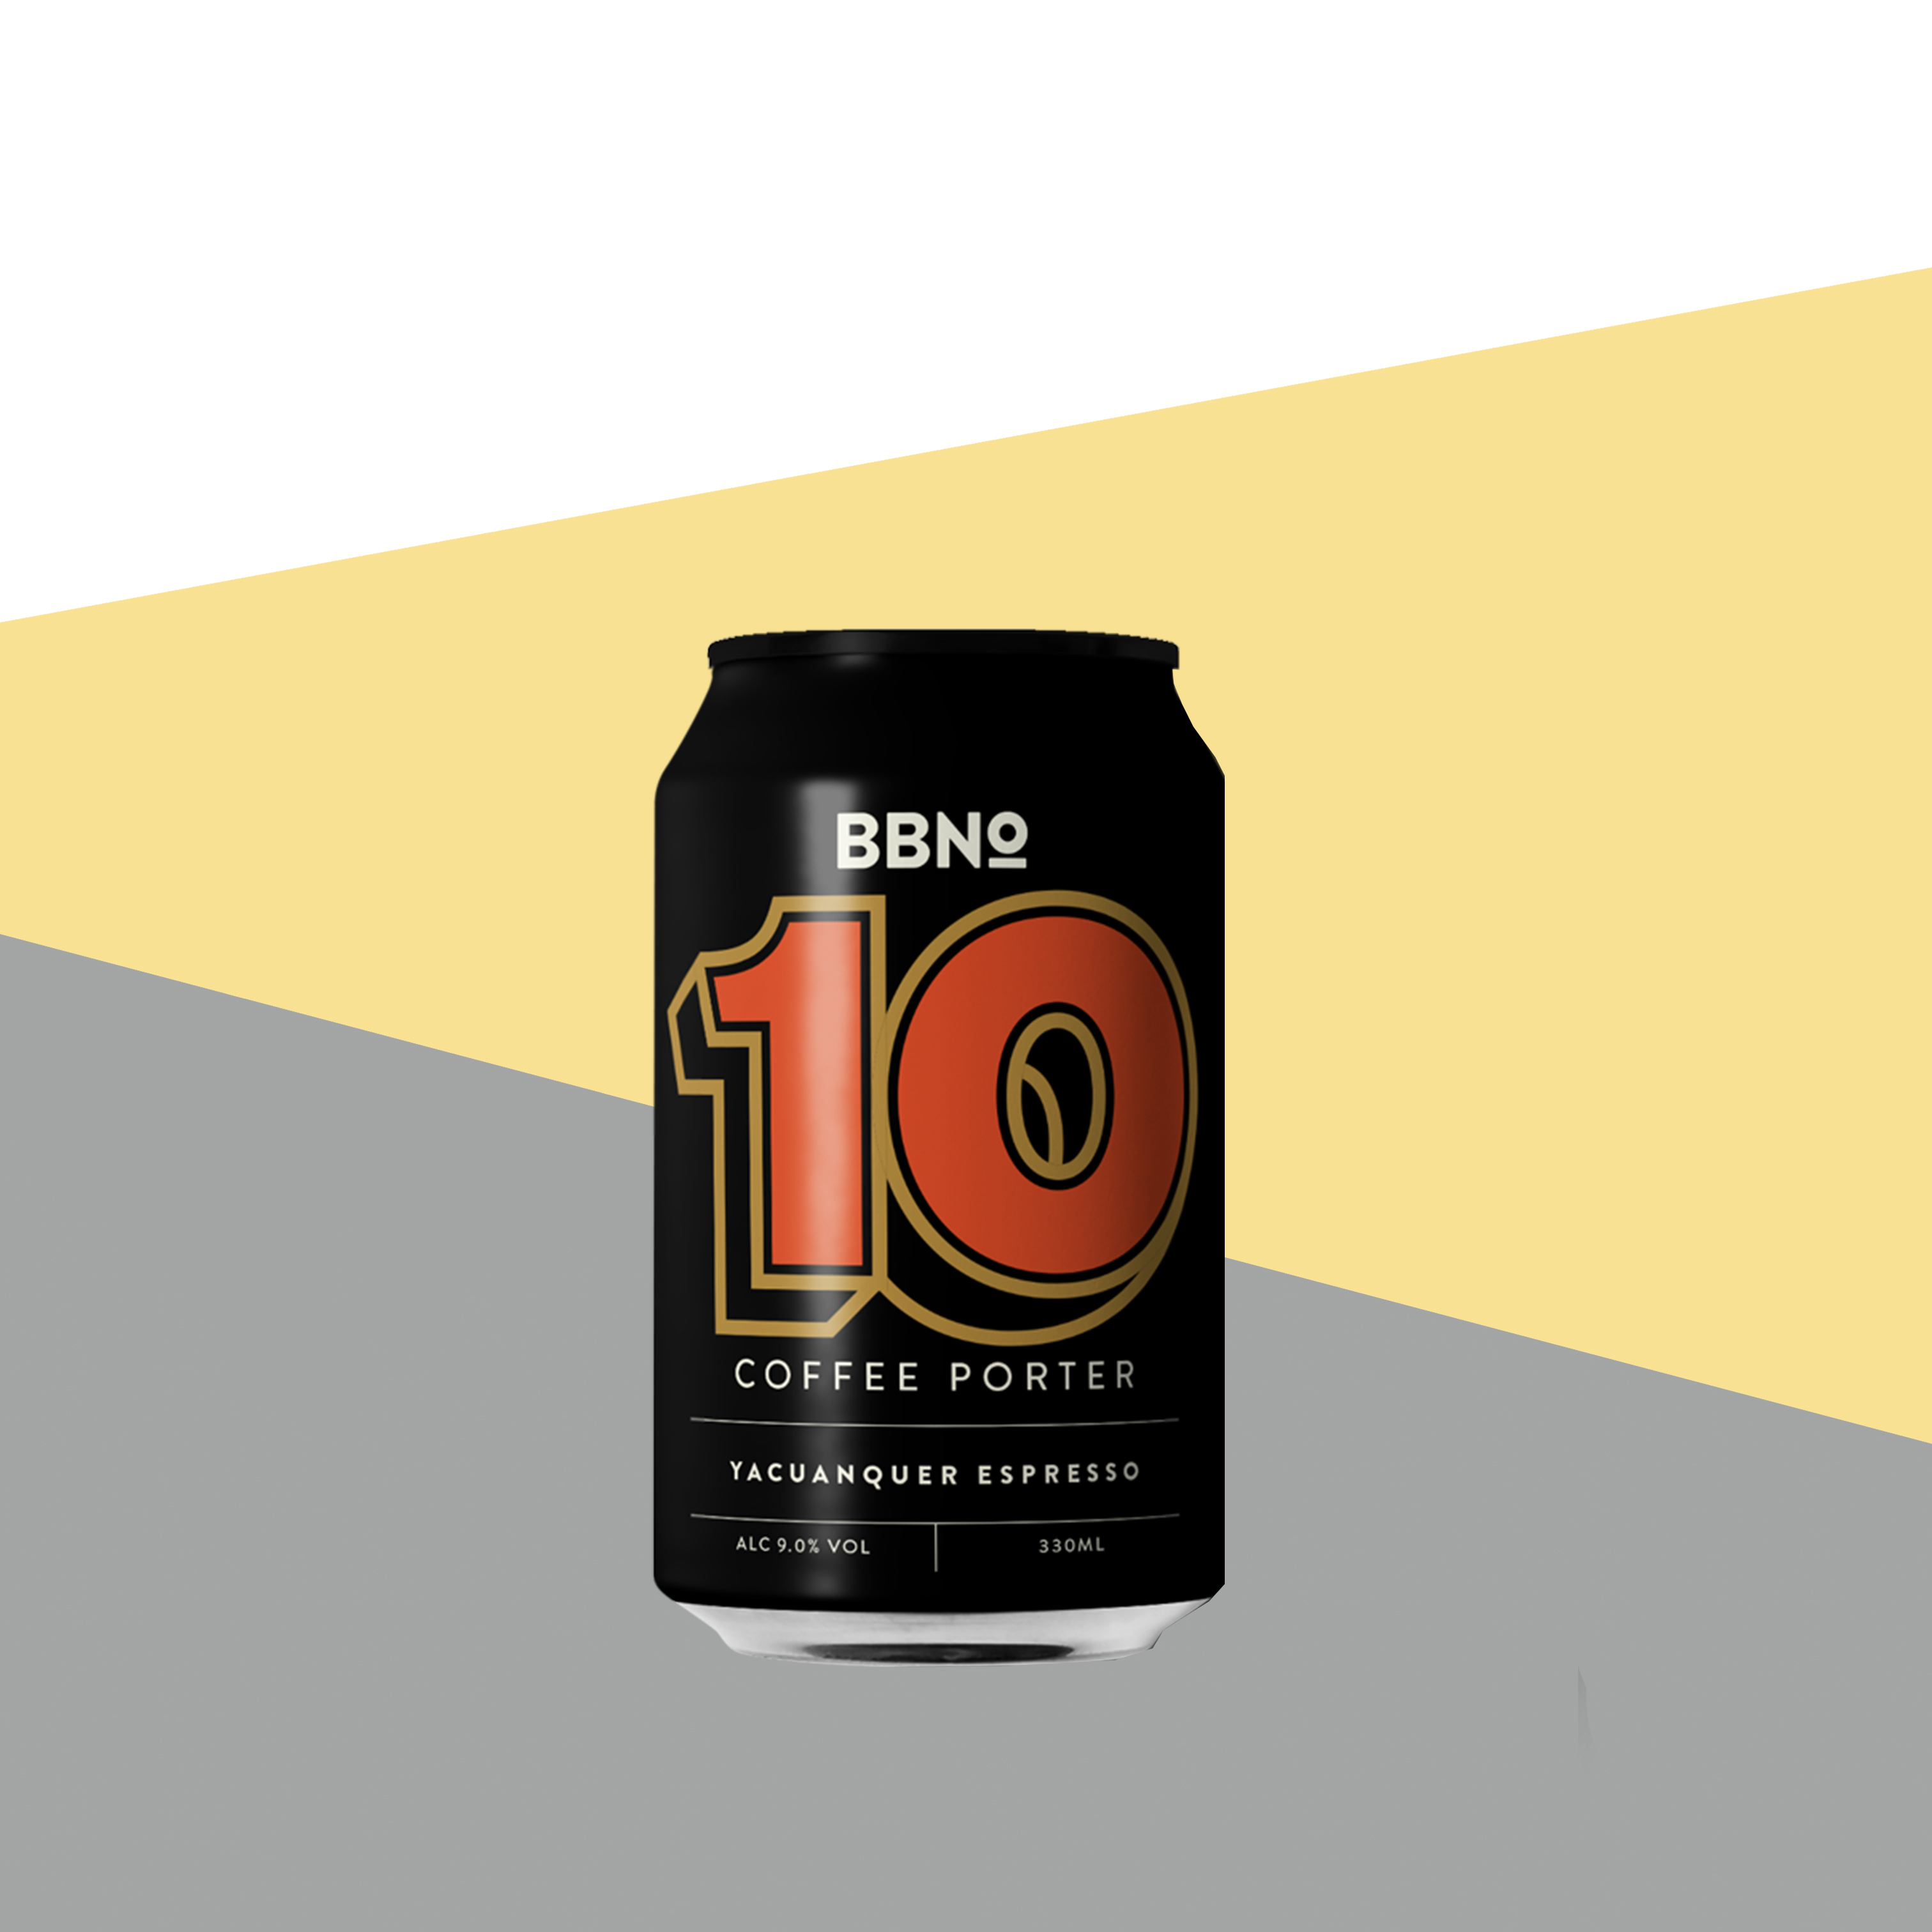 Brew by Numbers - 10 Coffee Porter Yacuanquer Espresso